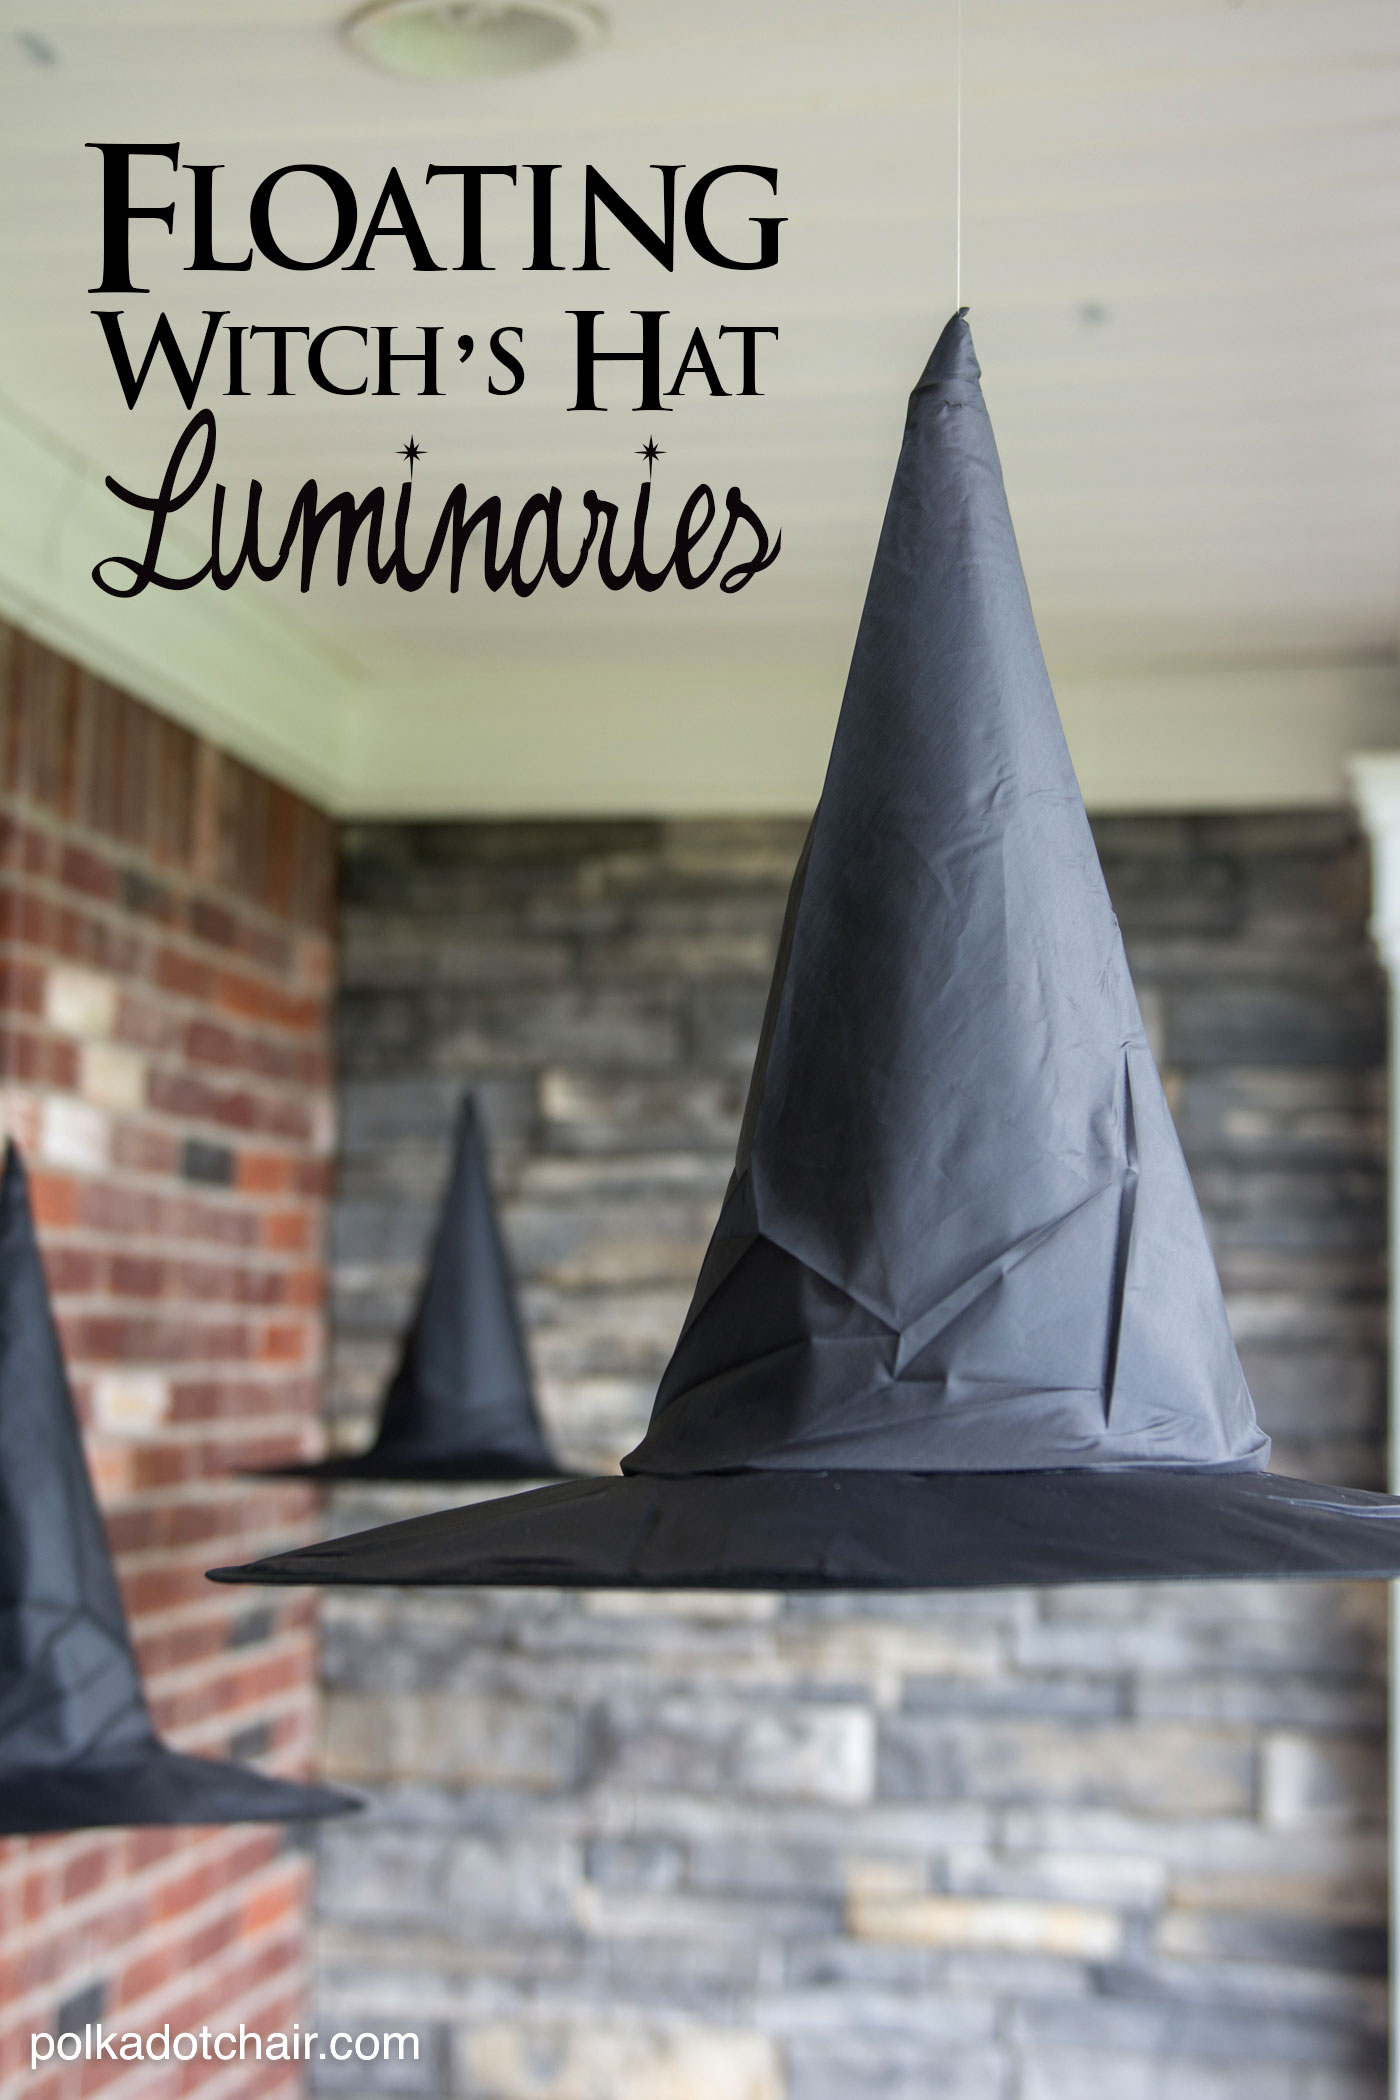 50 fun halloween decorating ideas 2016 easy halloween decorations